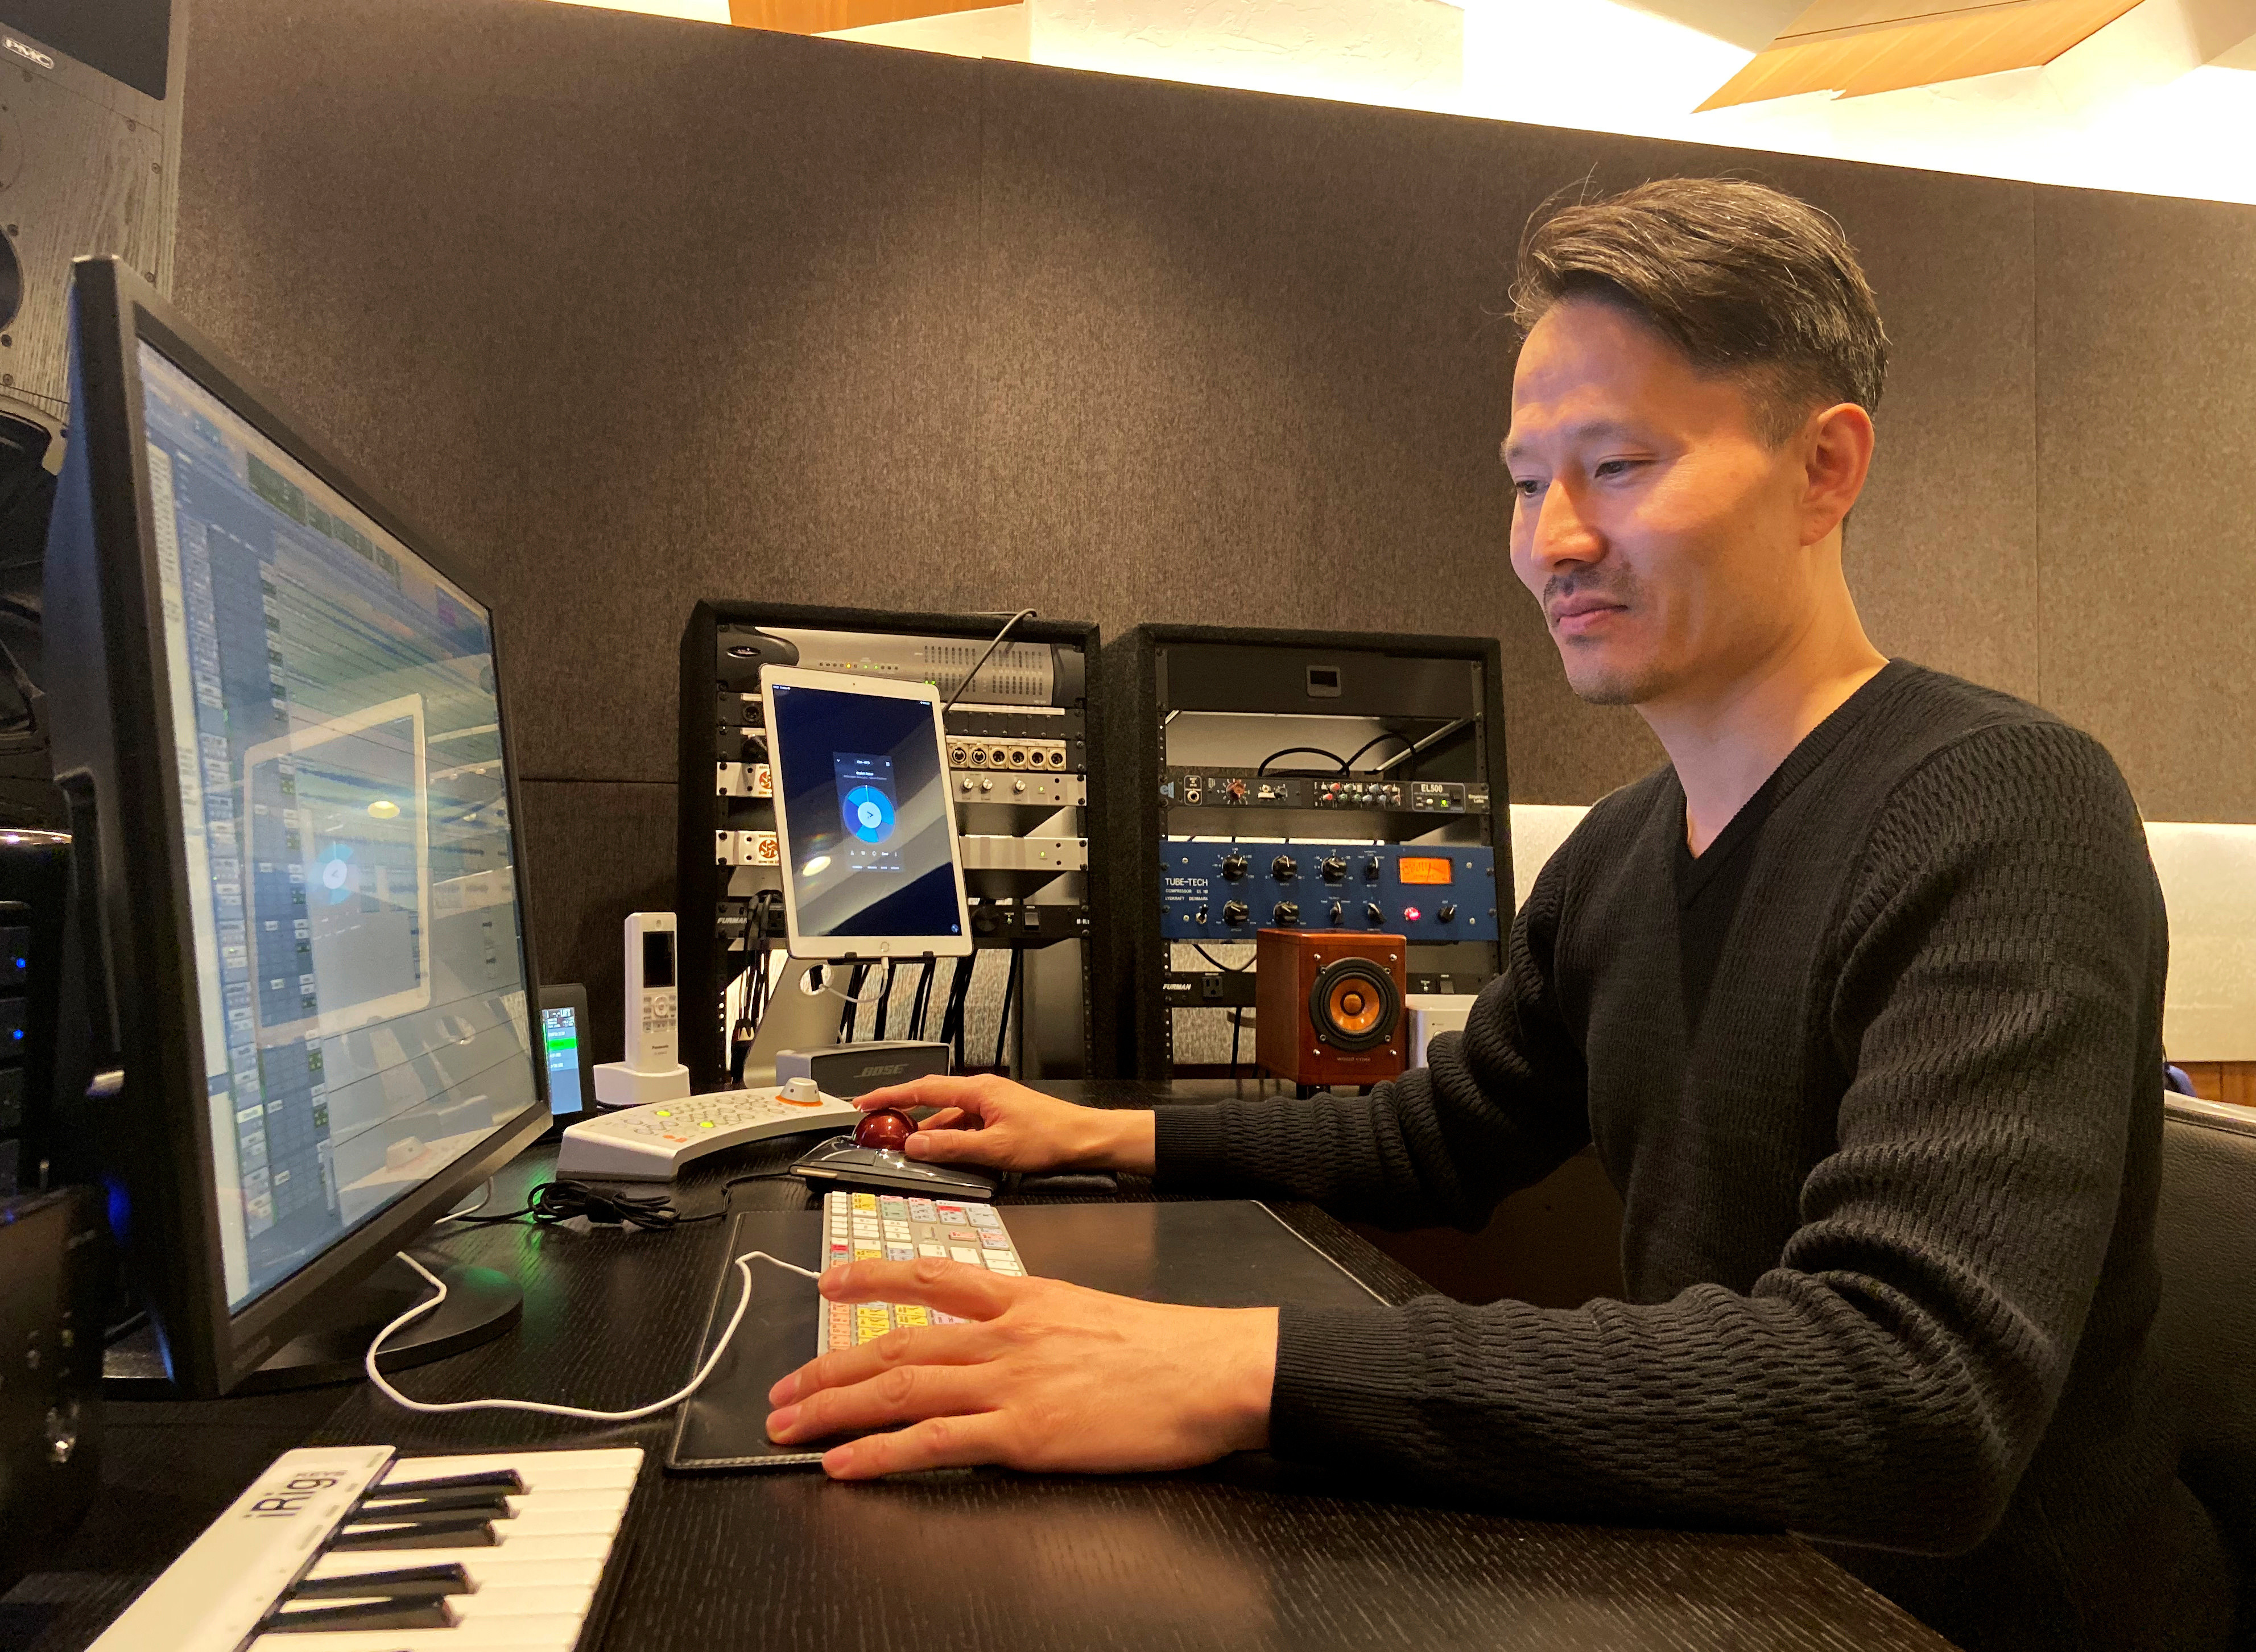 Jun Inoue, a producer who created a theme song for Pope Francis' upcoming visit to Japan, demonstrates his work at his studio in Tokyo.